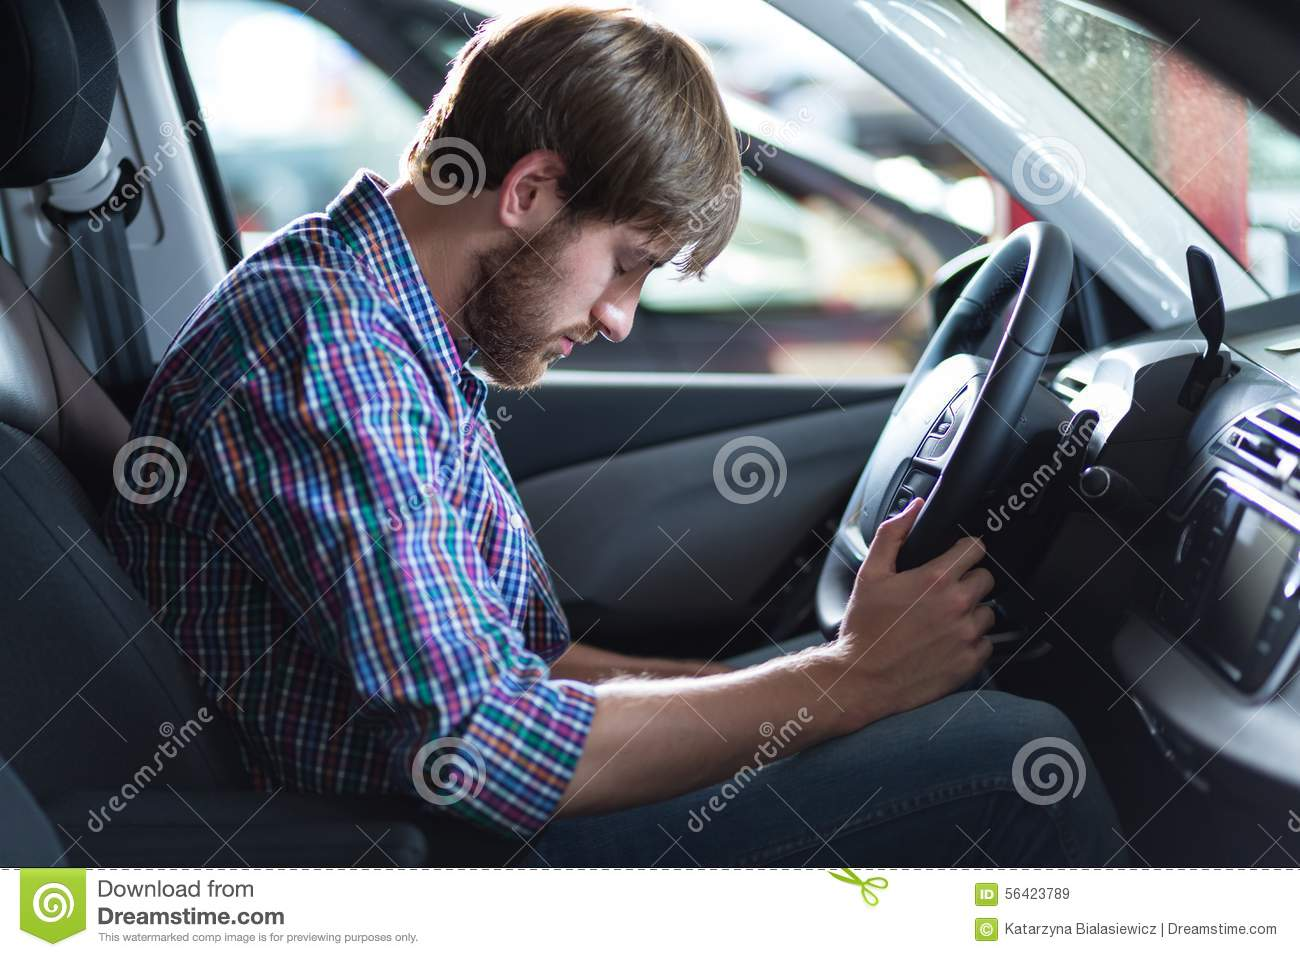 Driver having problem with car